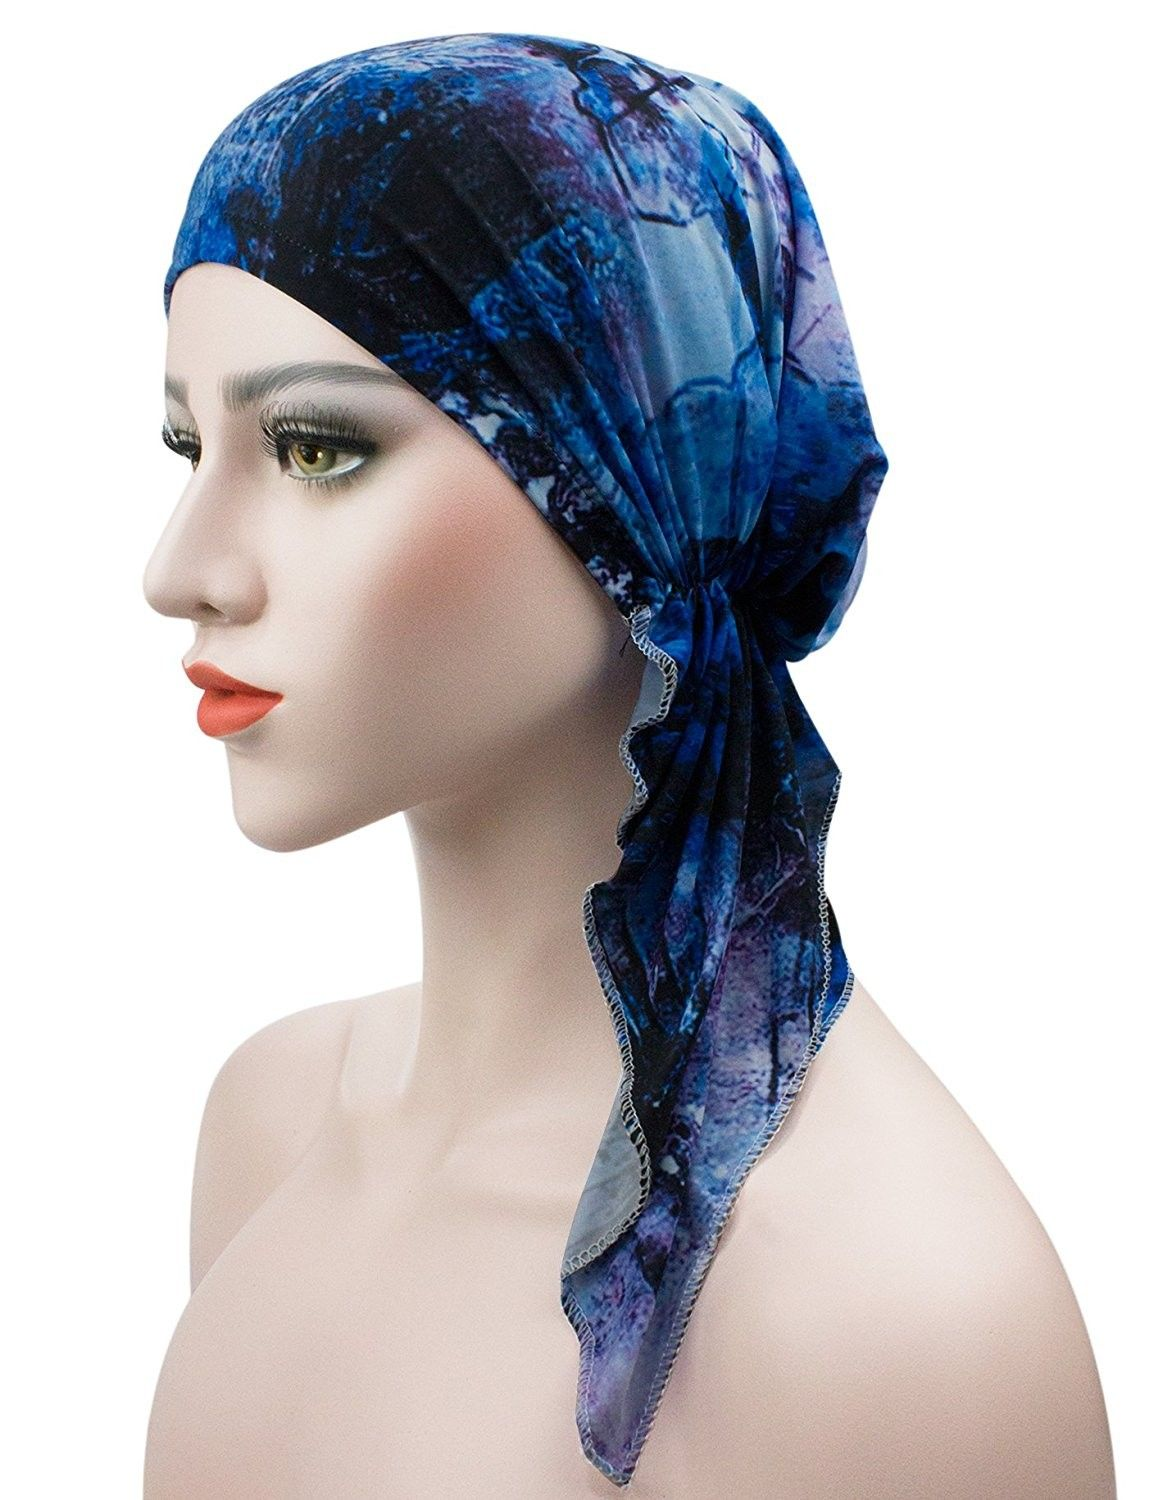 Women s Scarf Pre Tied Chemo Hat Beanie Turban Headwear For Cancer Patients  - Multicolor 02 - CC182Y9X4YG - Scarves   Wraps 6986b154bb2